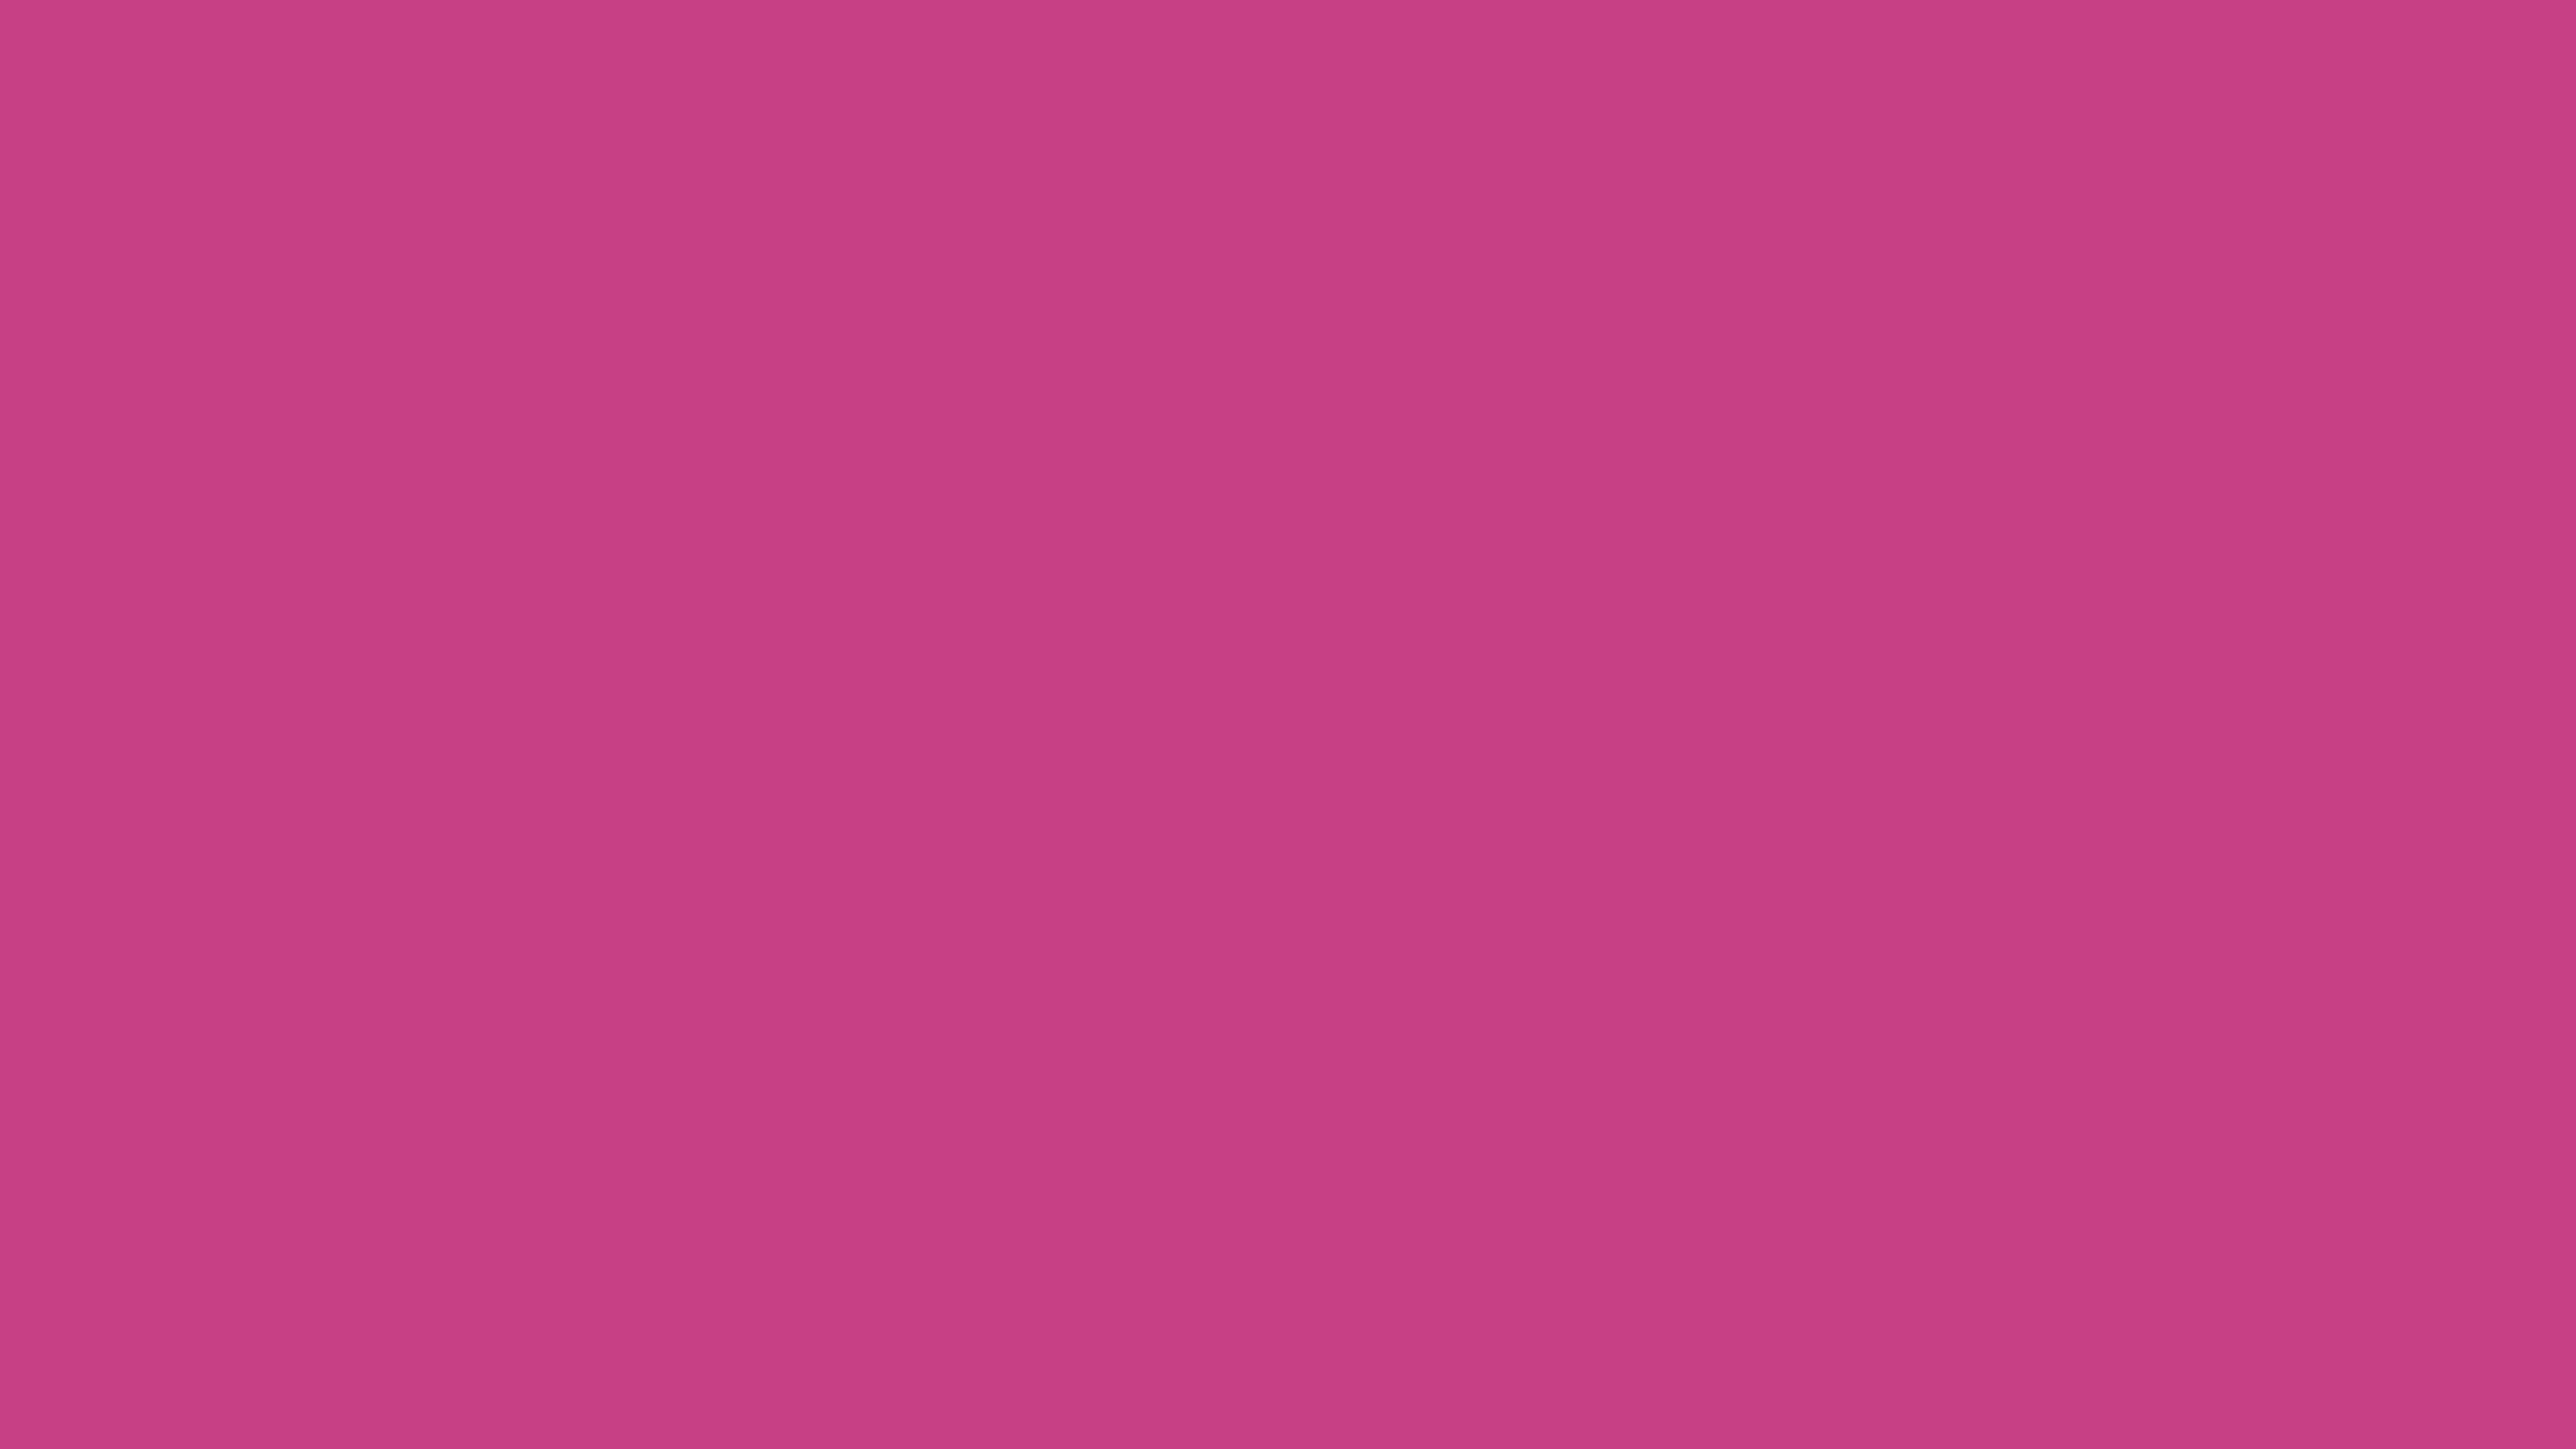 5120x2880 Smitten Solid Color Background